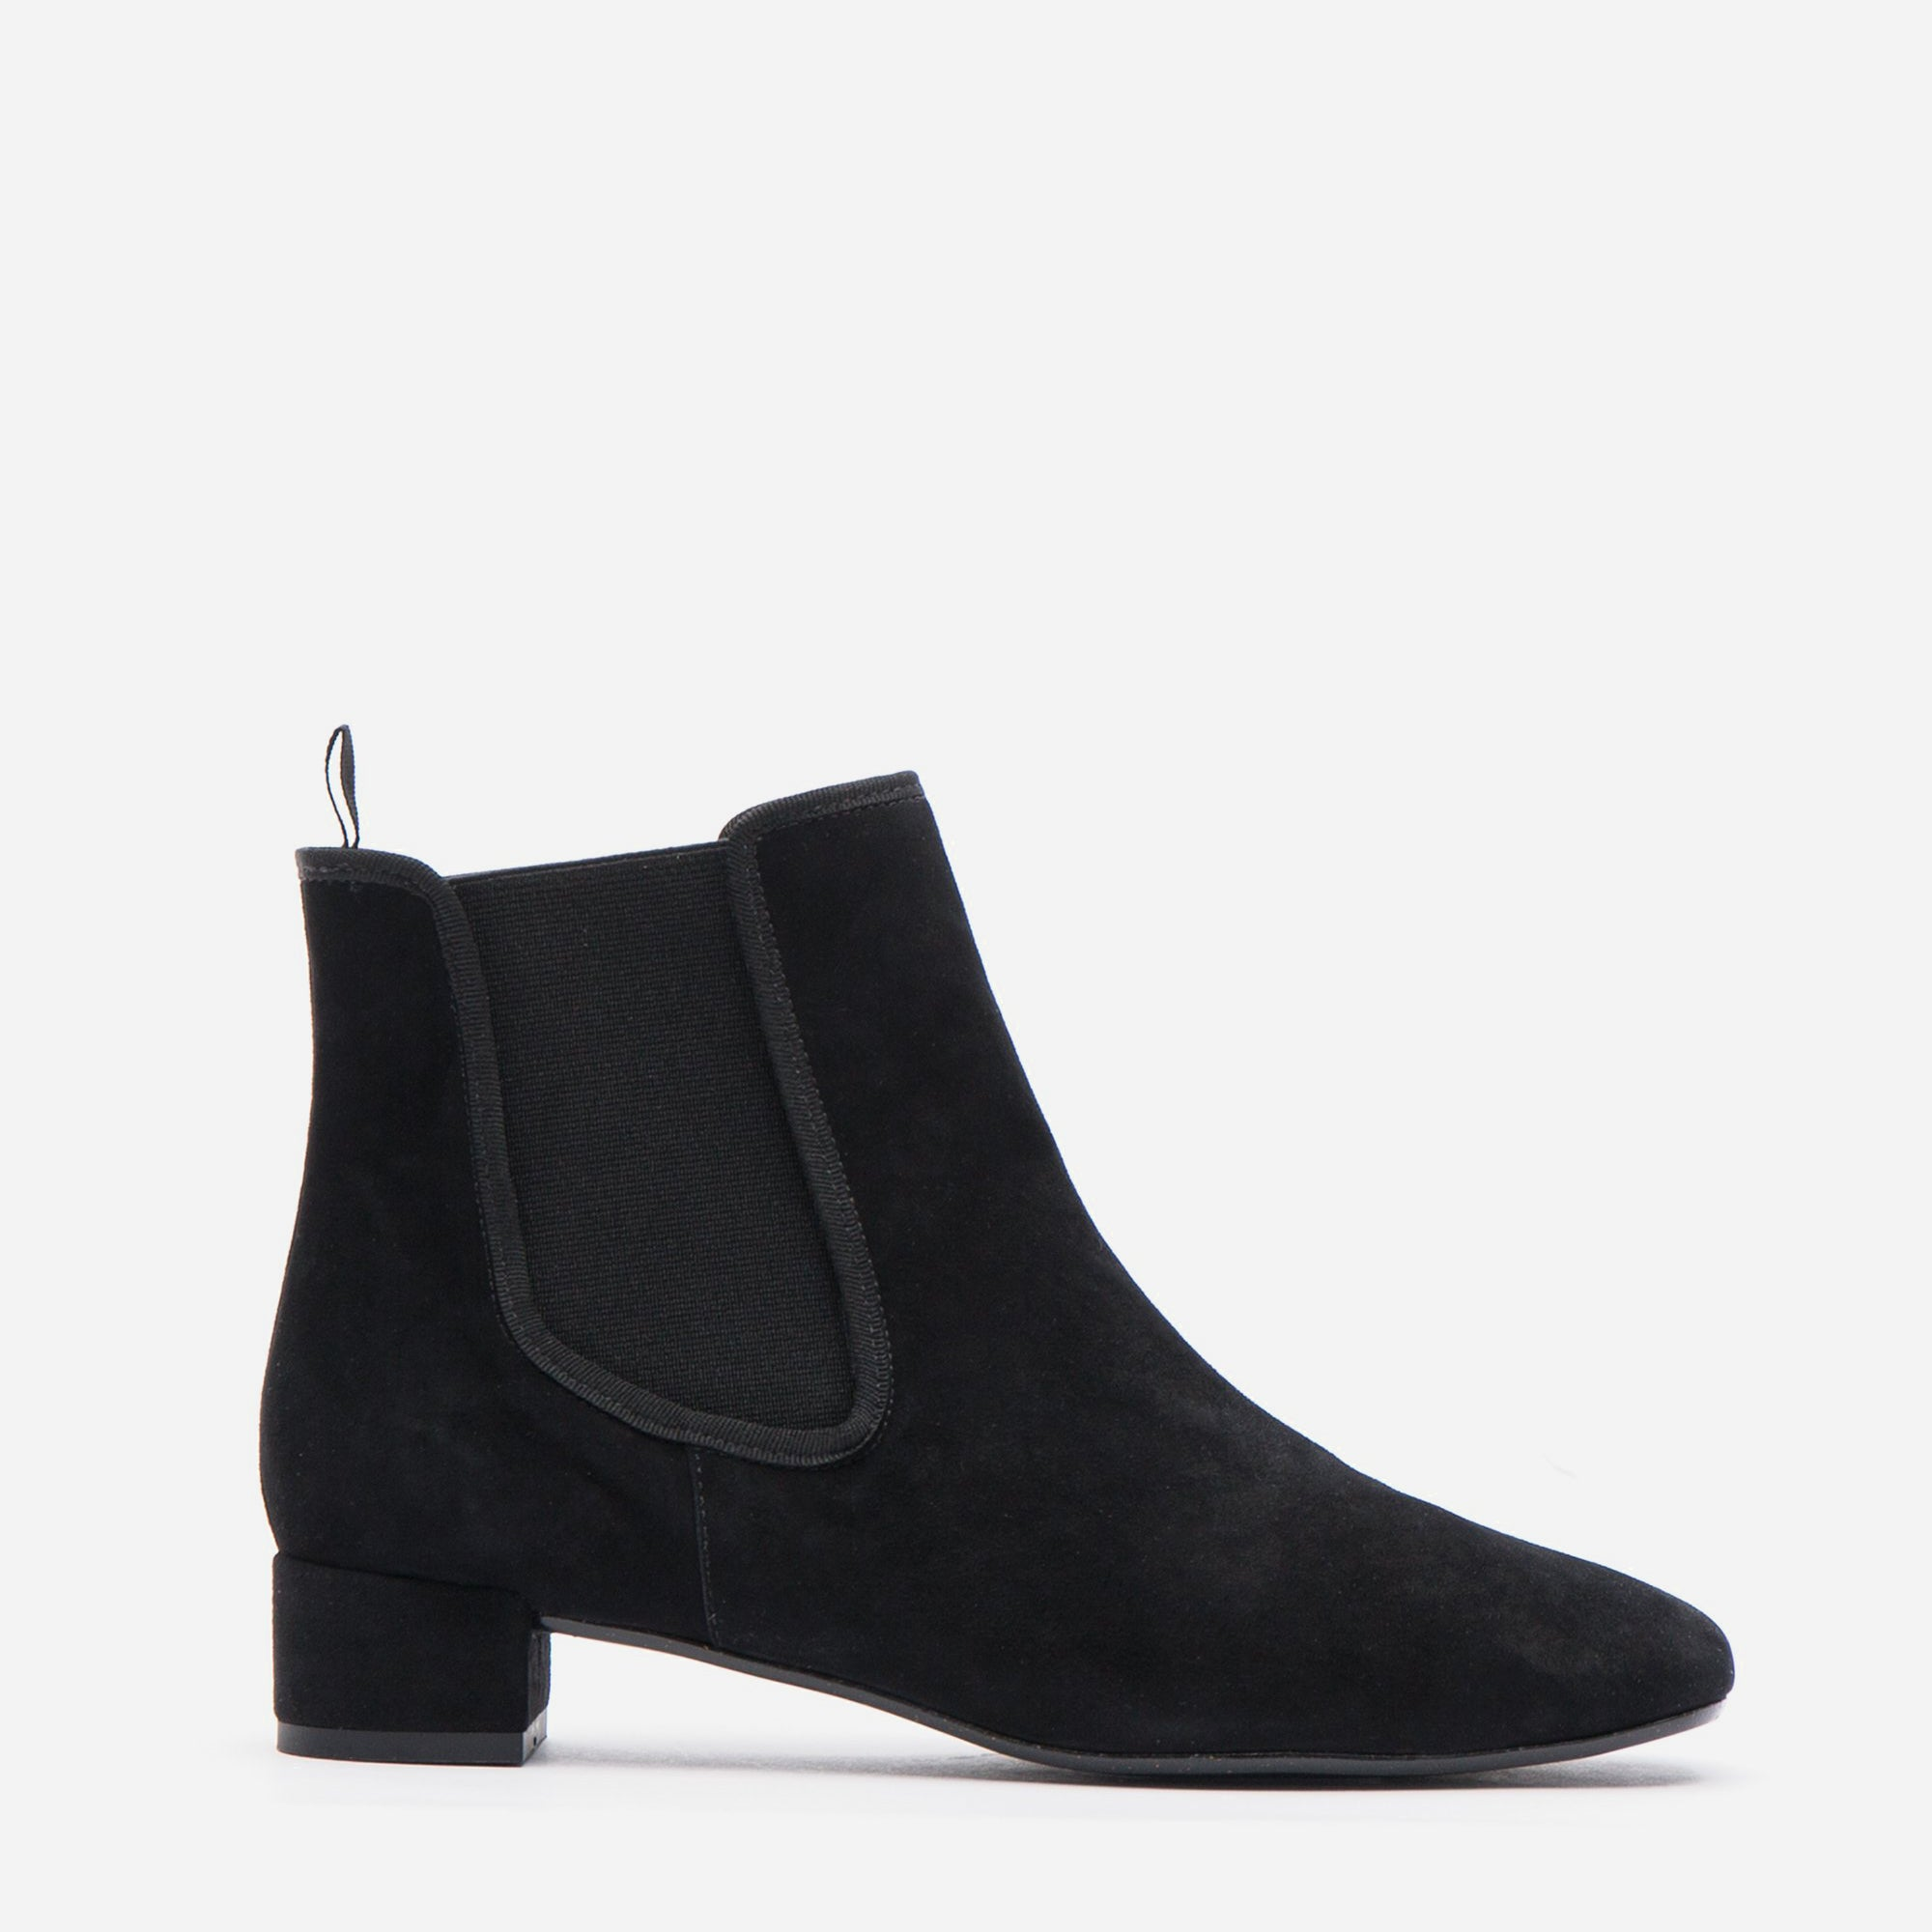 Milly Suede Boot Black - Frances Valentine